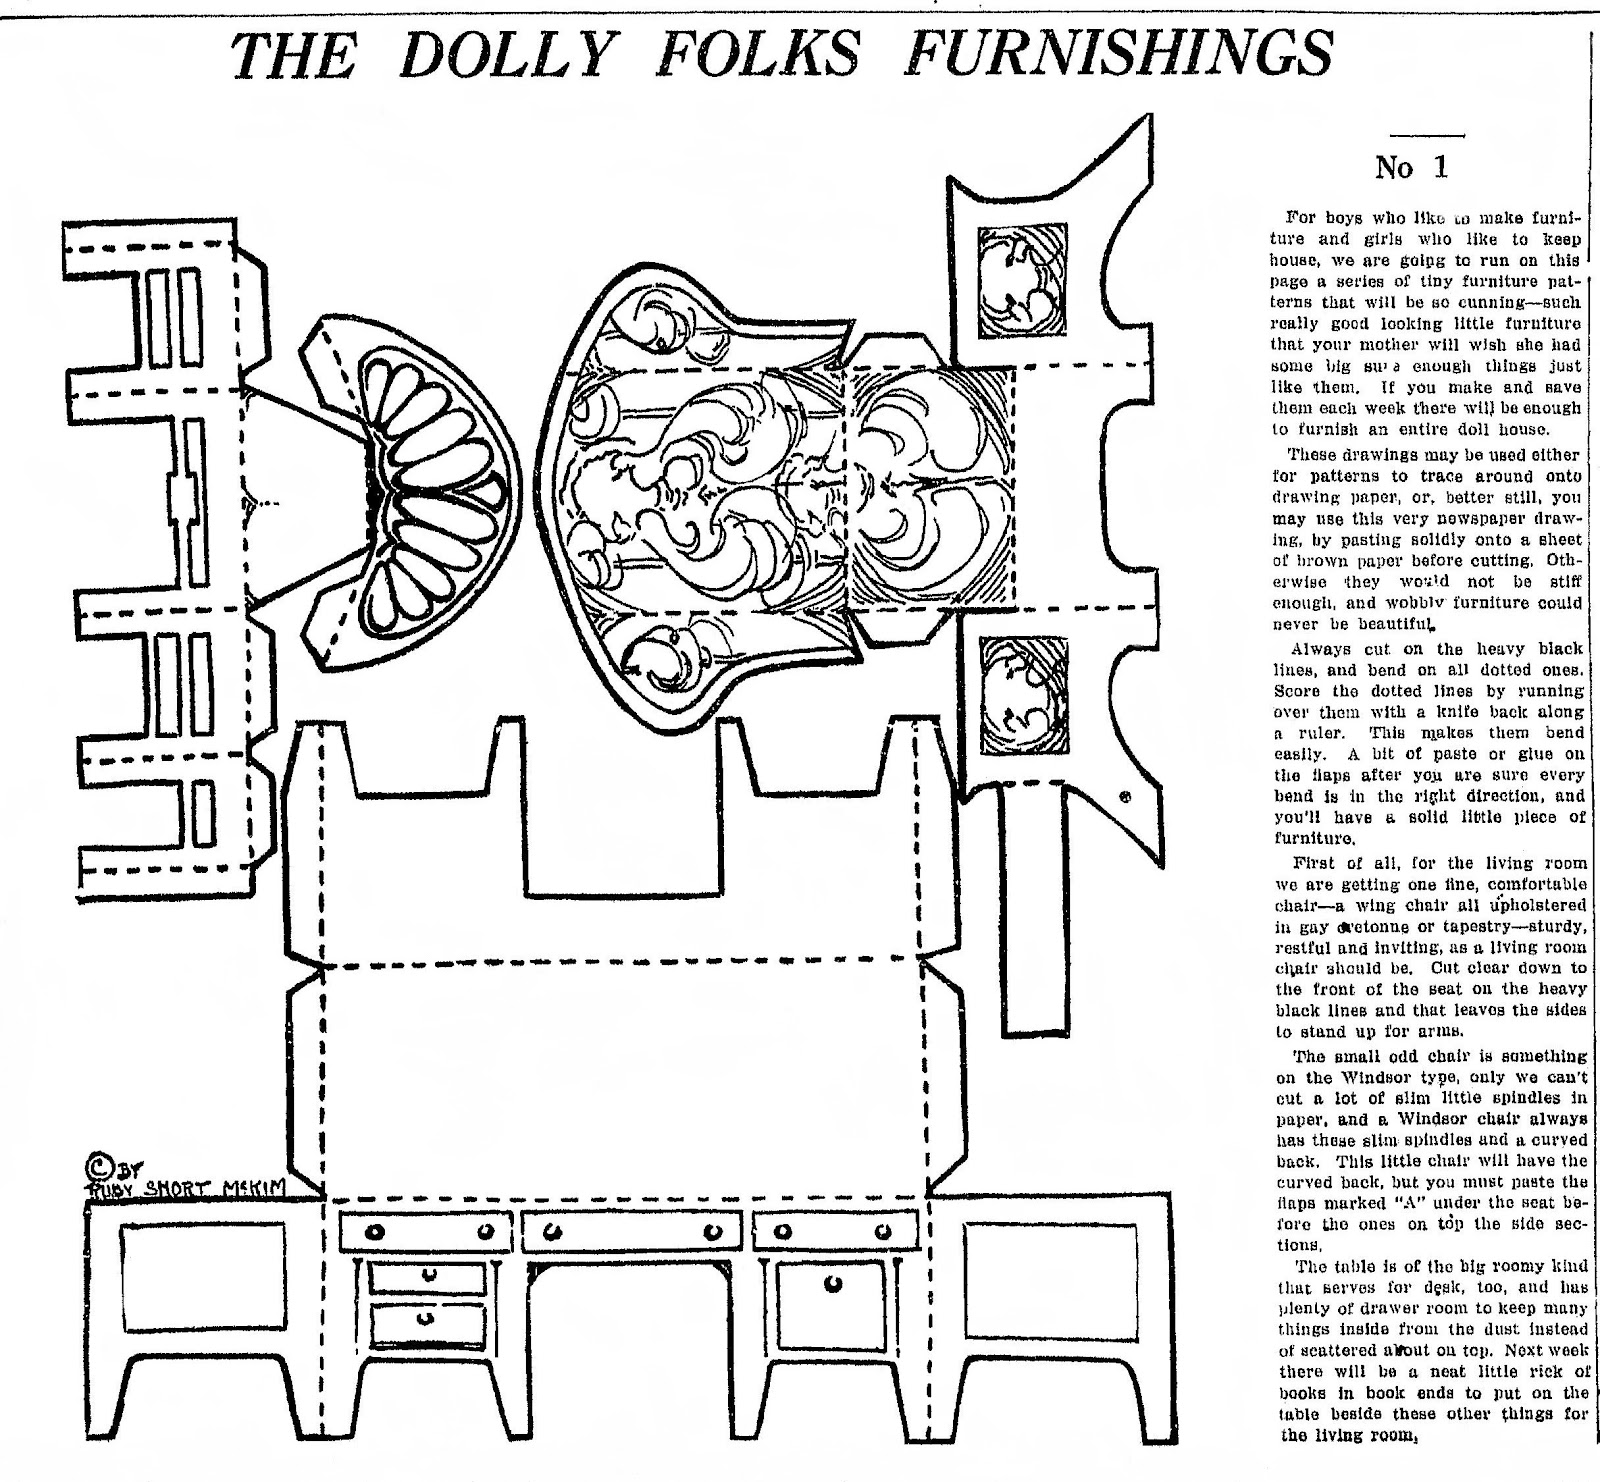 barbie coloring pages dresser | Mostly Paper Dolls: Dolly Folks Furnishings 1921